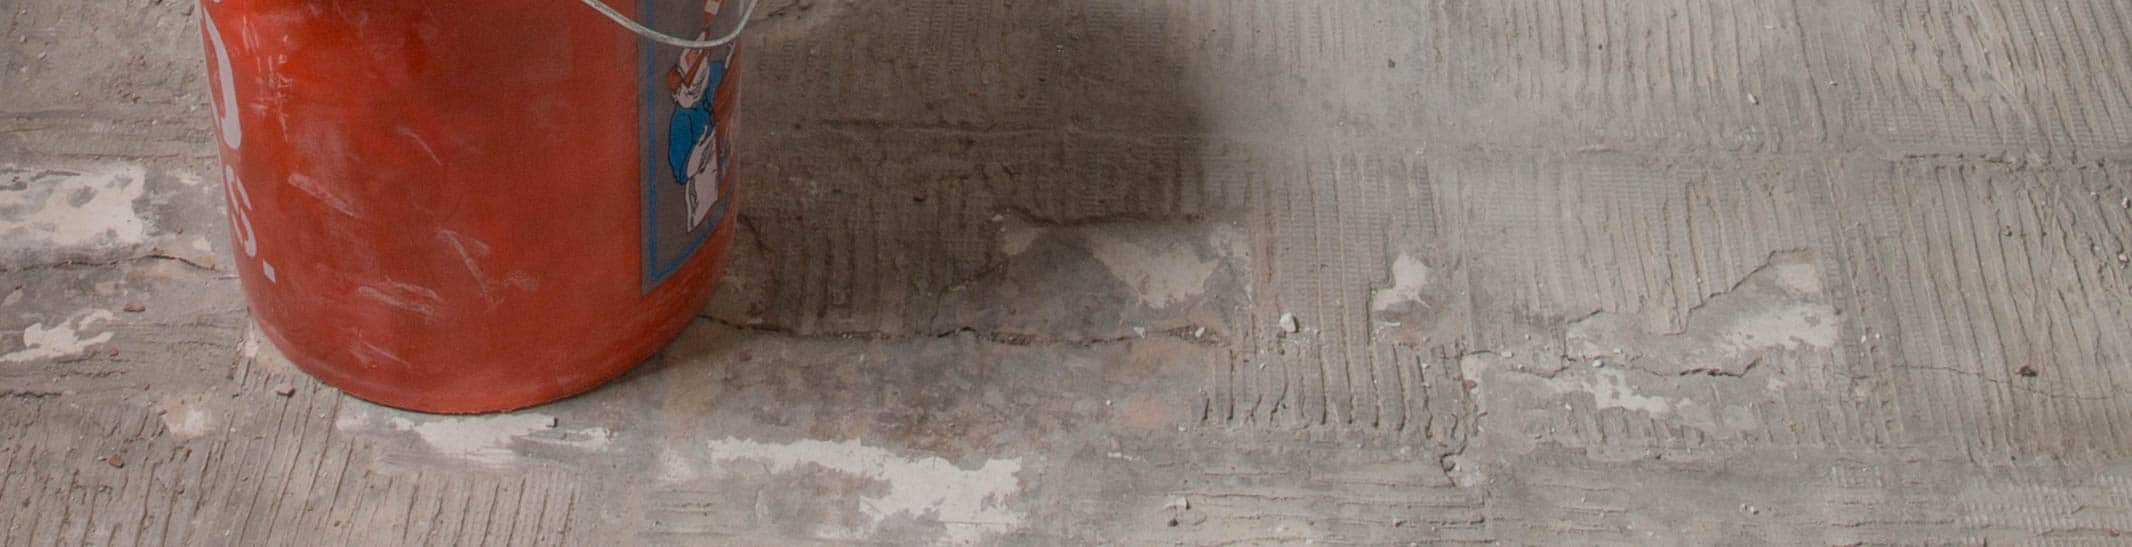 The Best Way To Remove Thinset From Concrete - From House